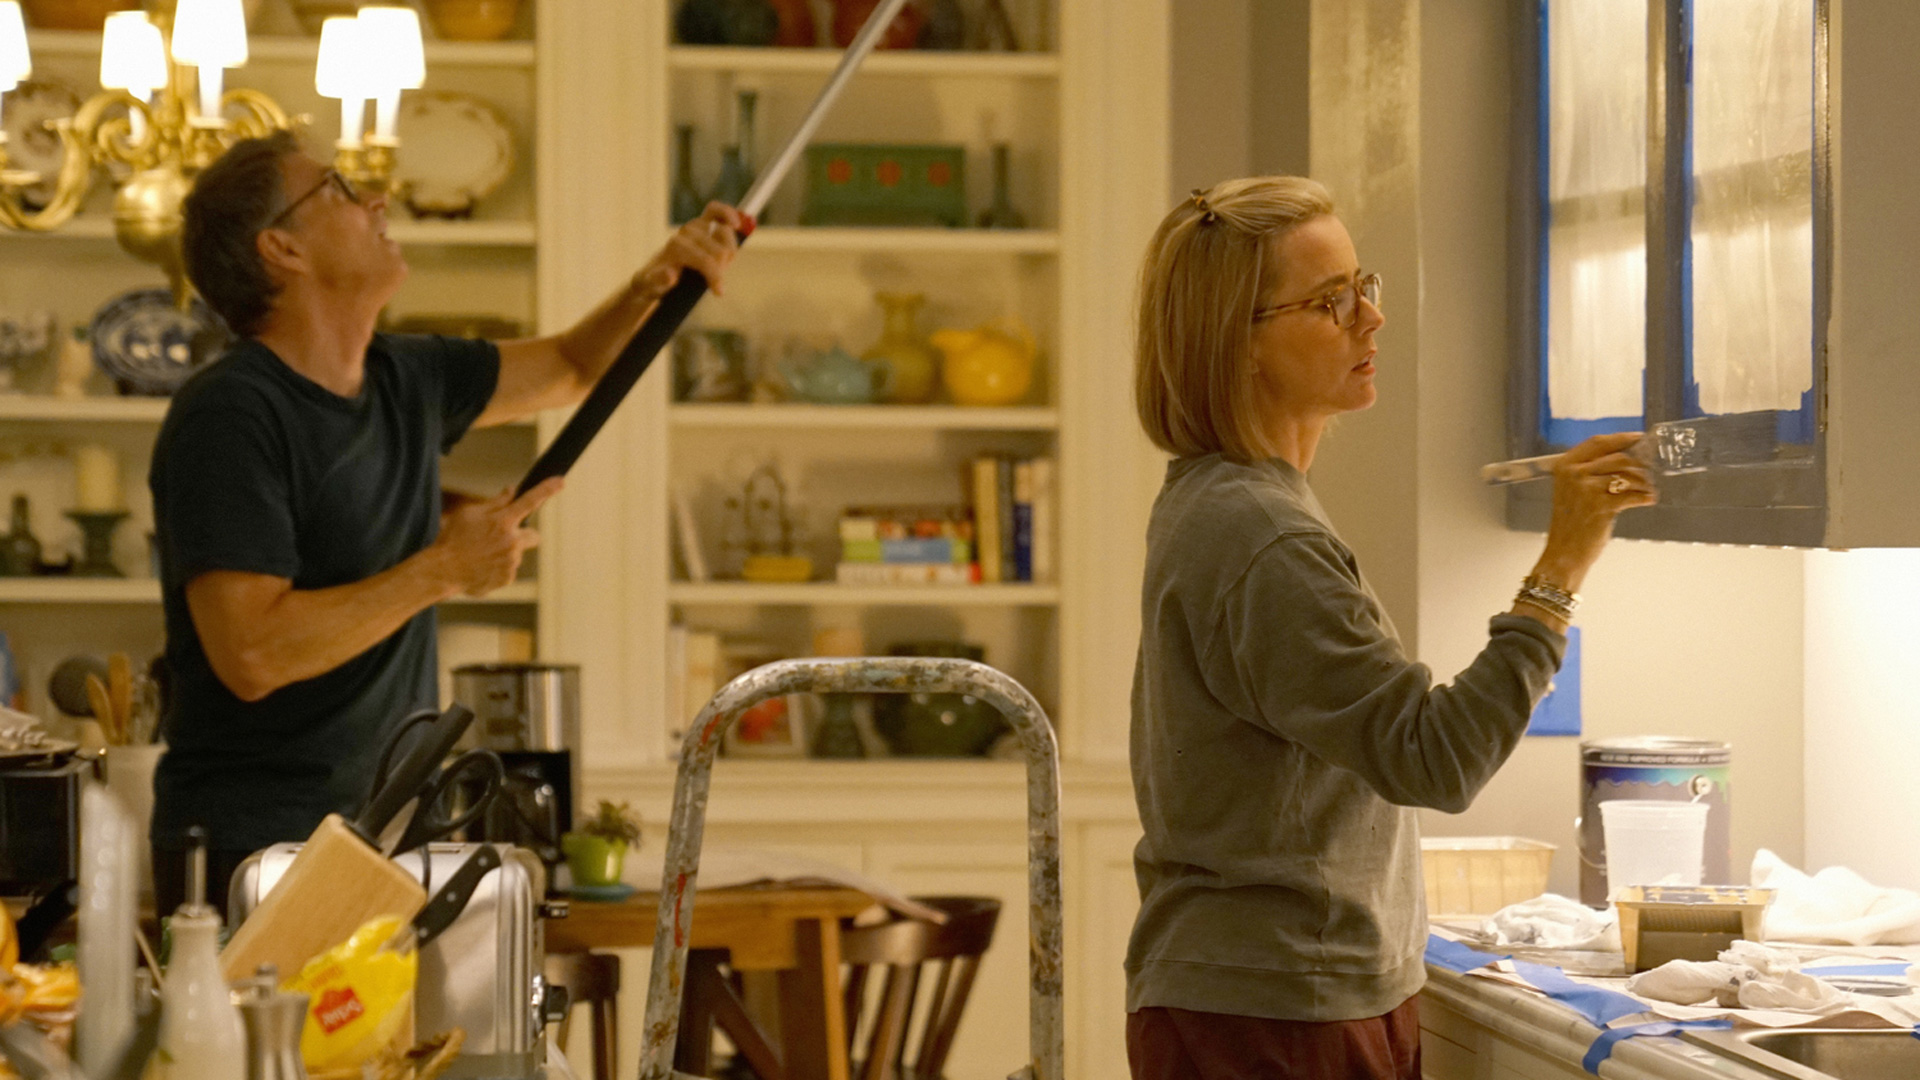 Tim Daly (Henry McCord) and Téa Leoni (Elizabeth McCord) freshen up the kitchen.